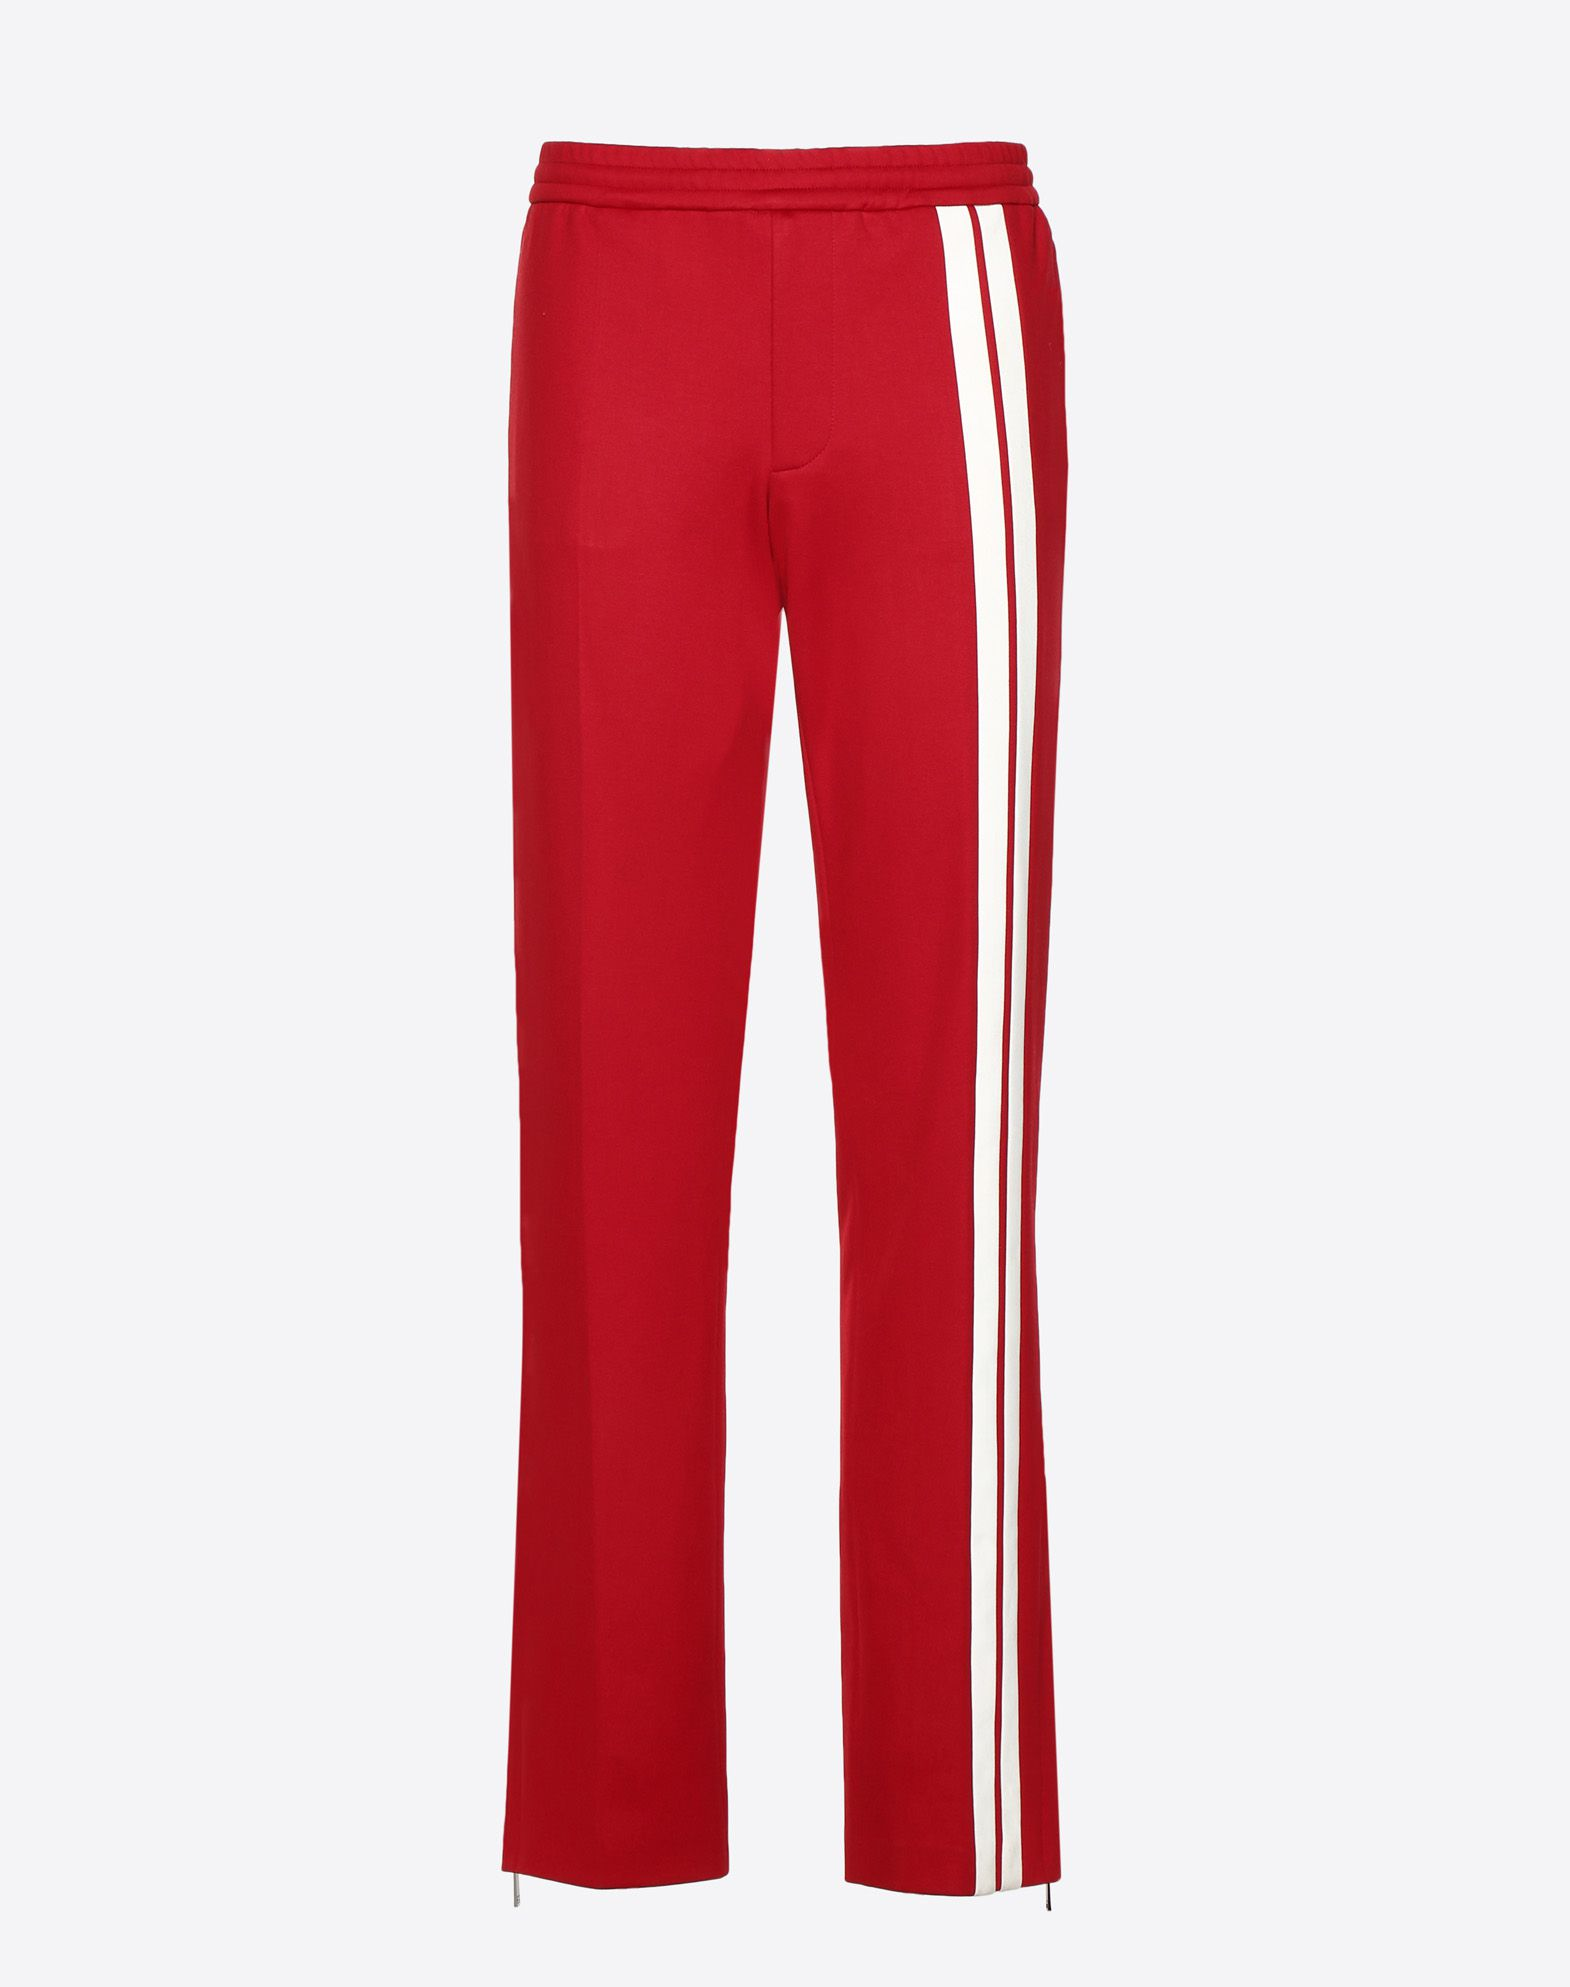 VALENTINO Pants with contrasting bands Pants U f